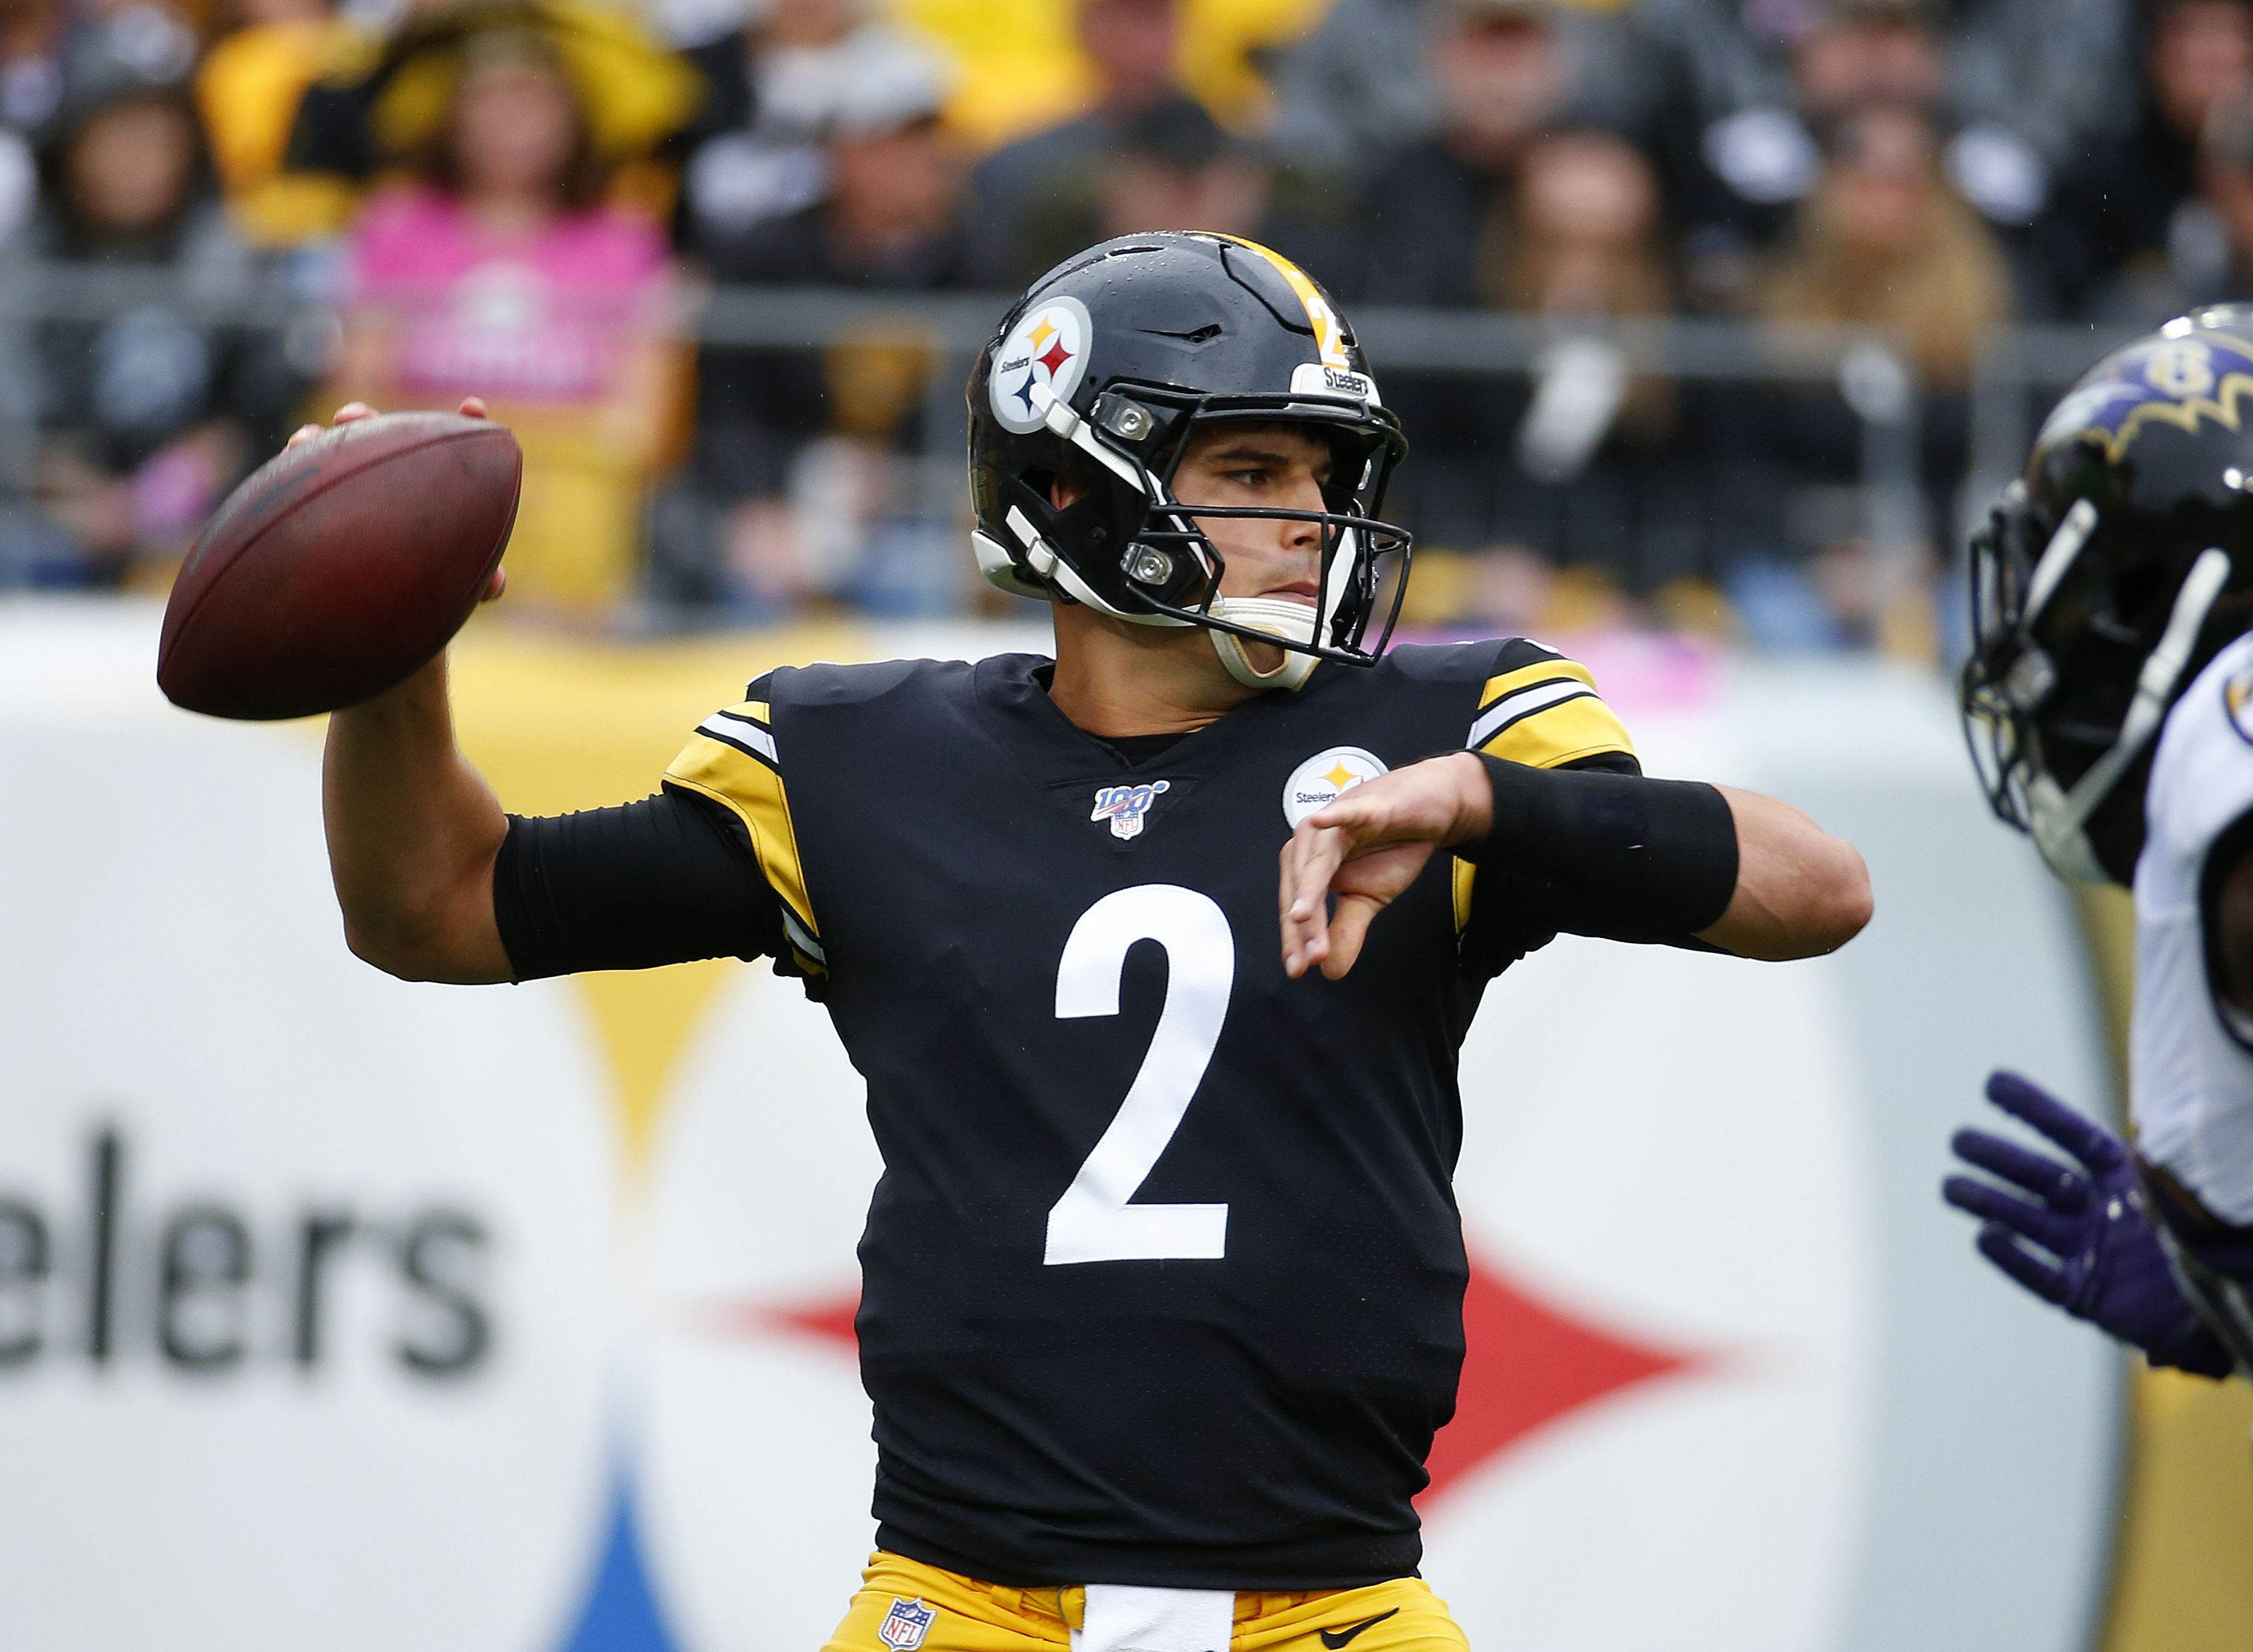 Tomlin assures Rudolph 'is our quarterback' going forward